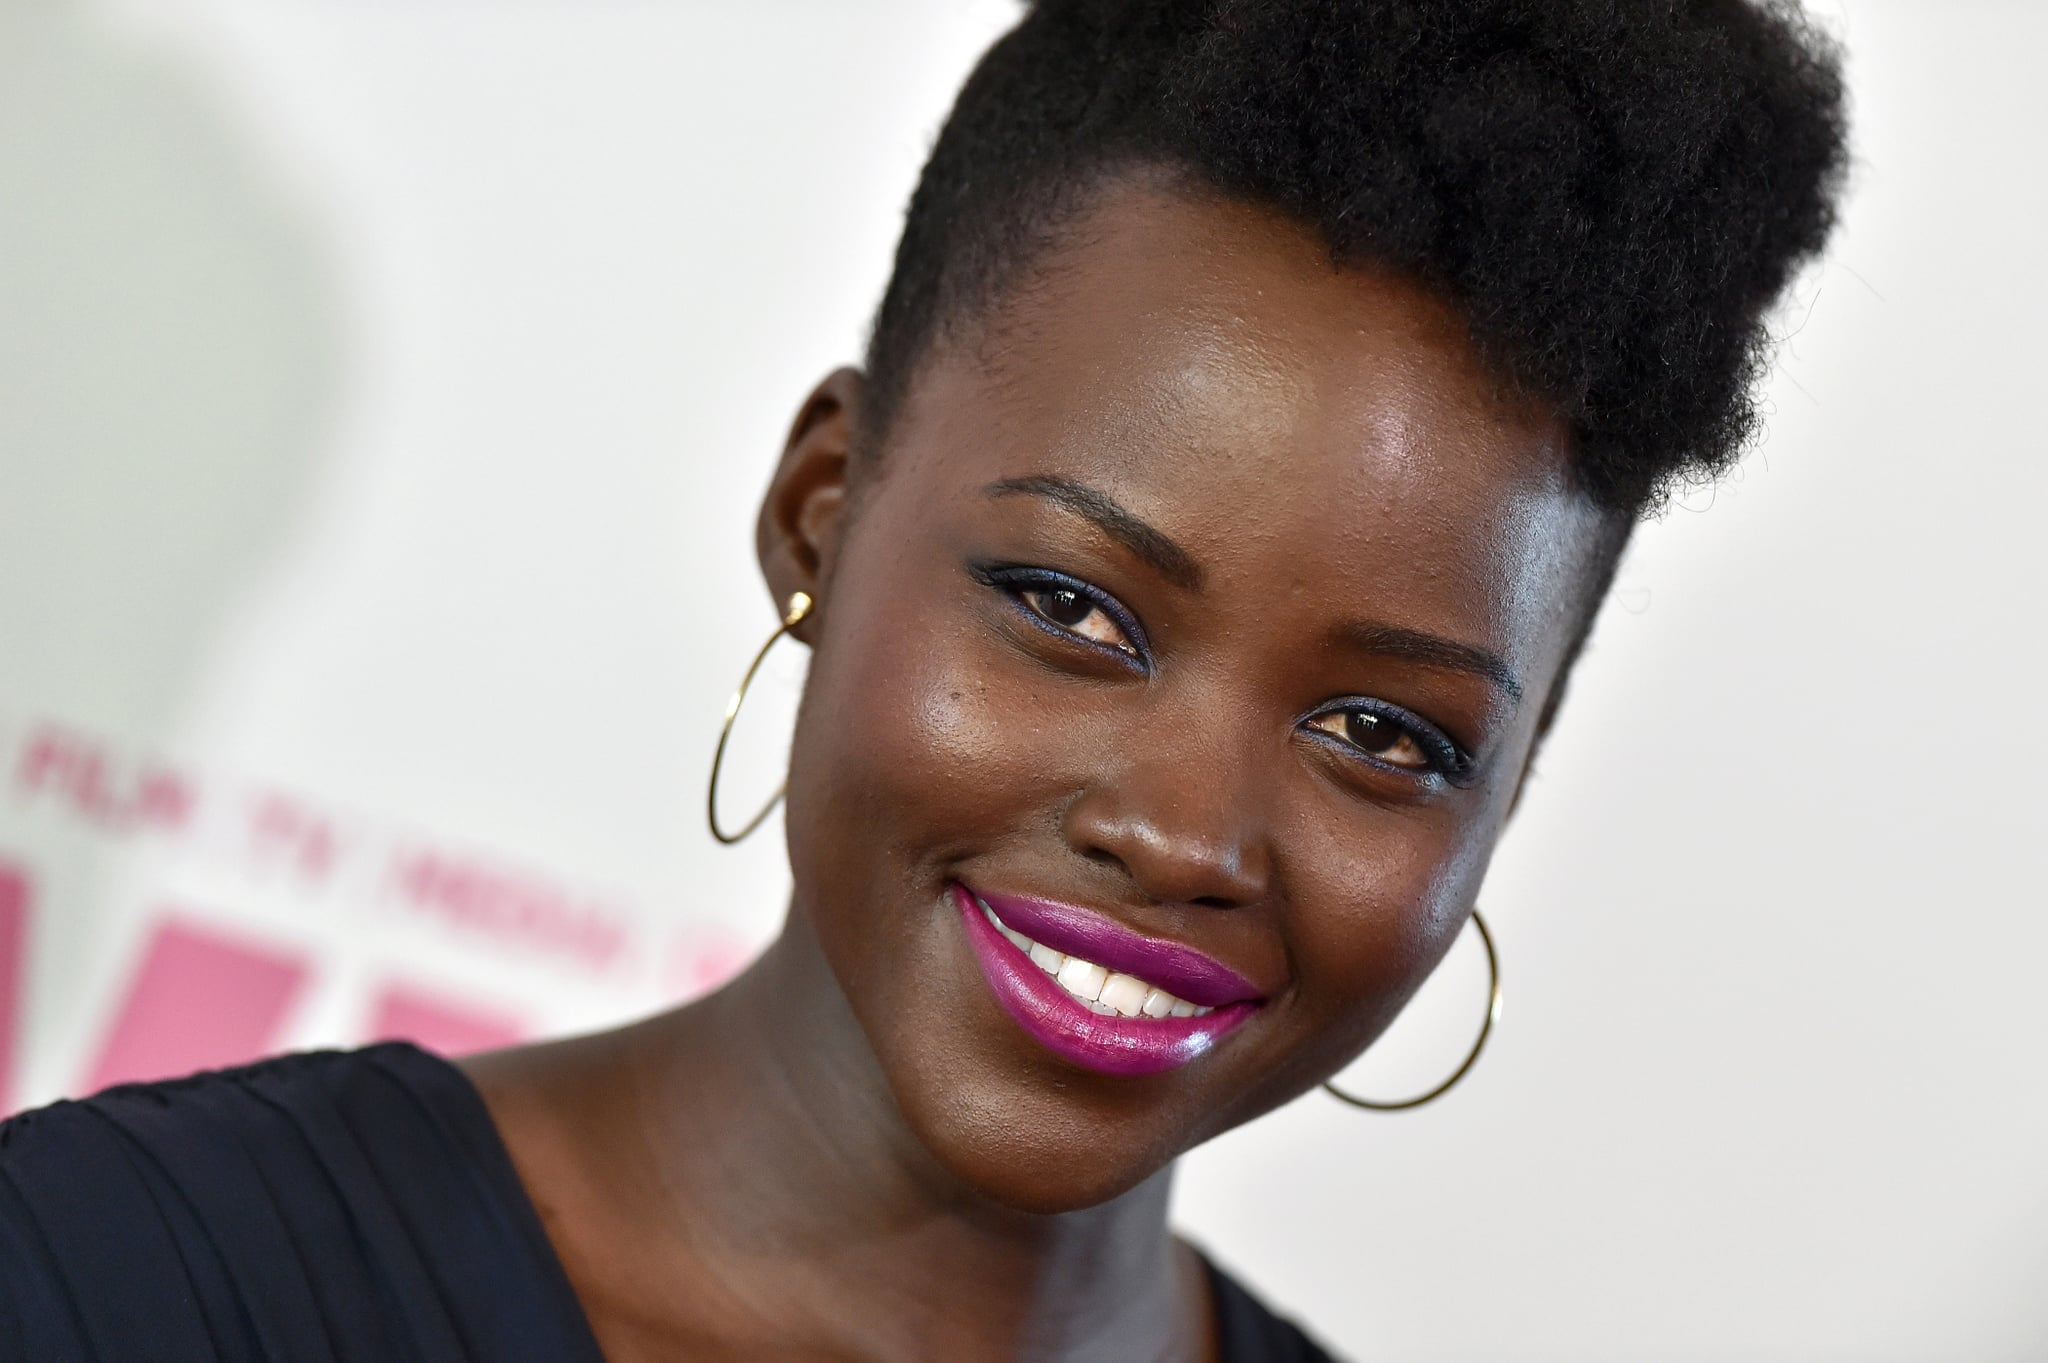 Grazia UK' Apologizes for Photoshopping Lupita Nyong'o's NaturalHair photo